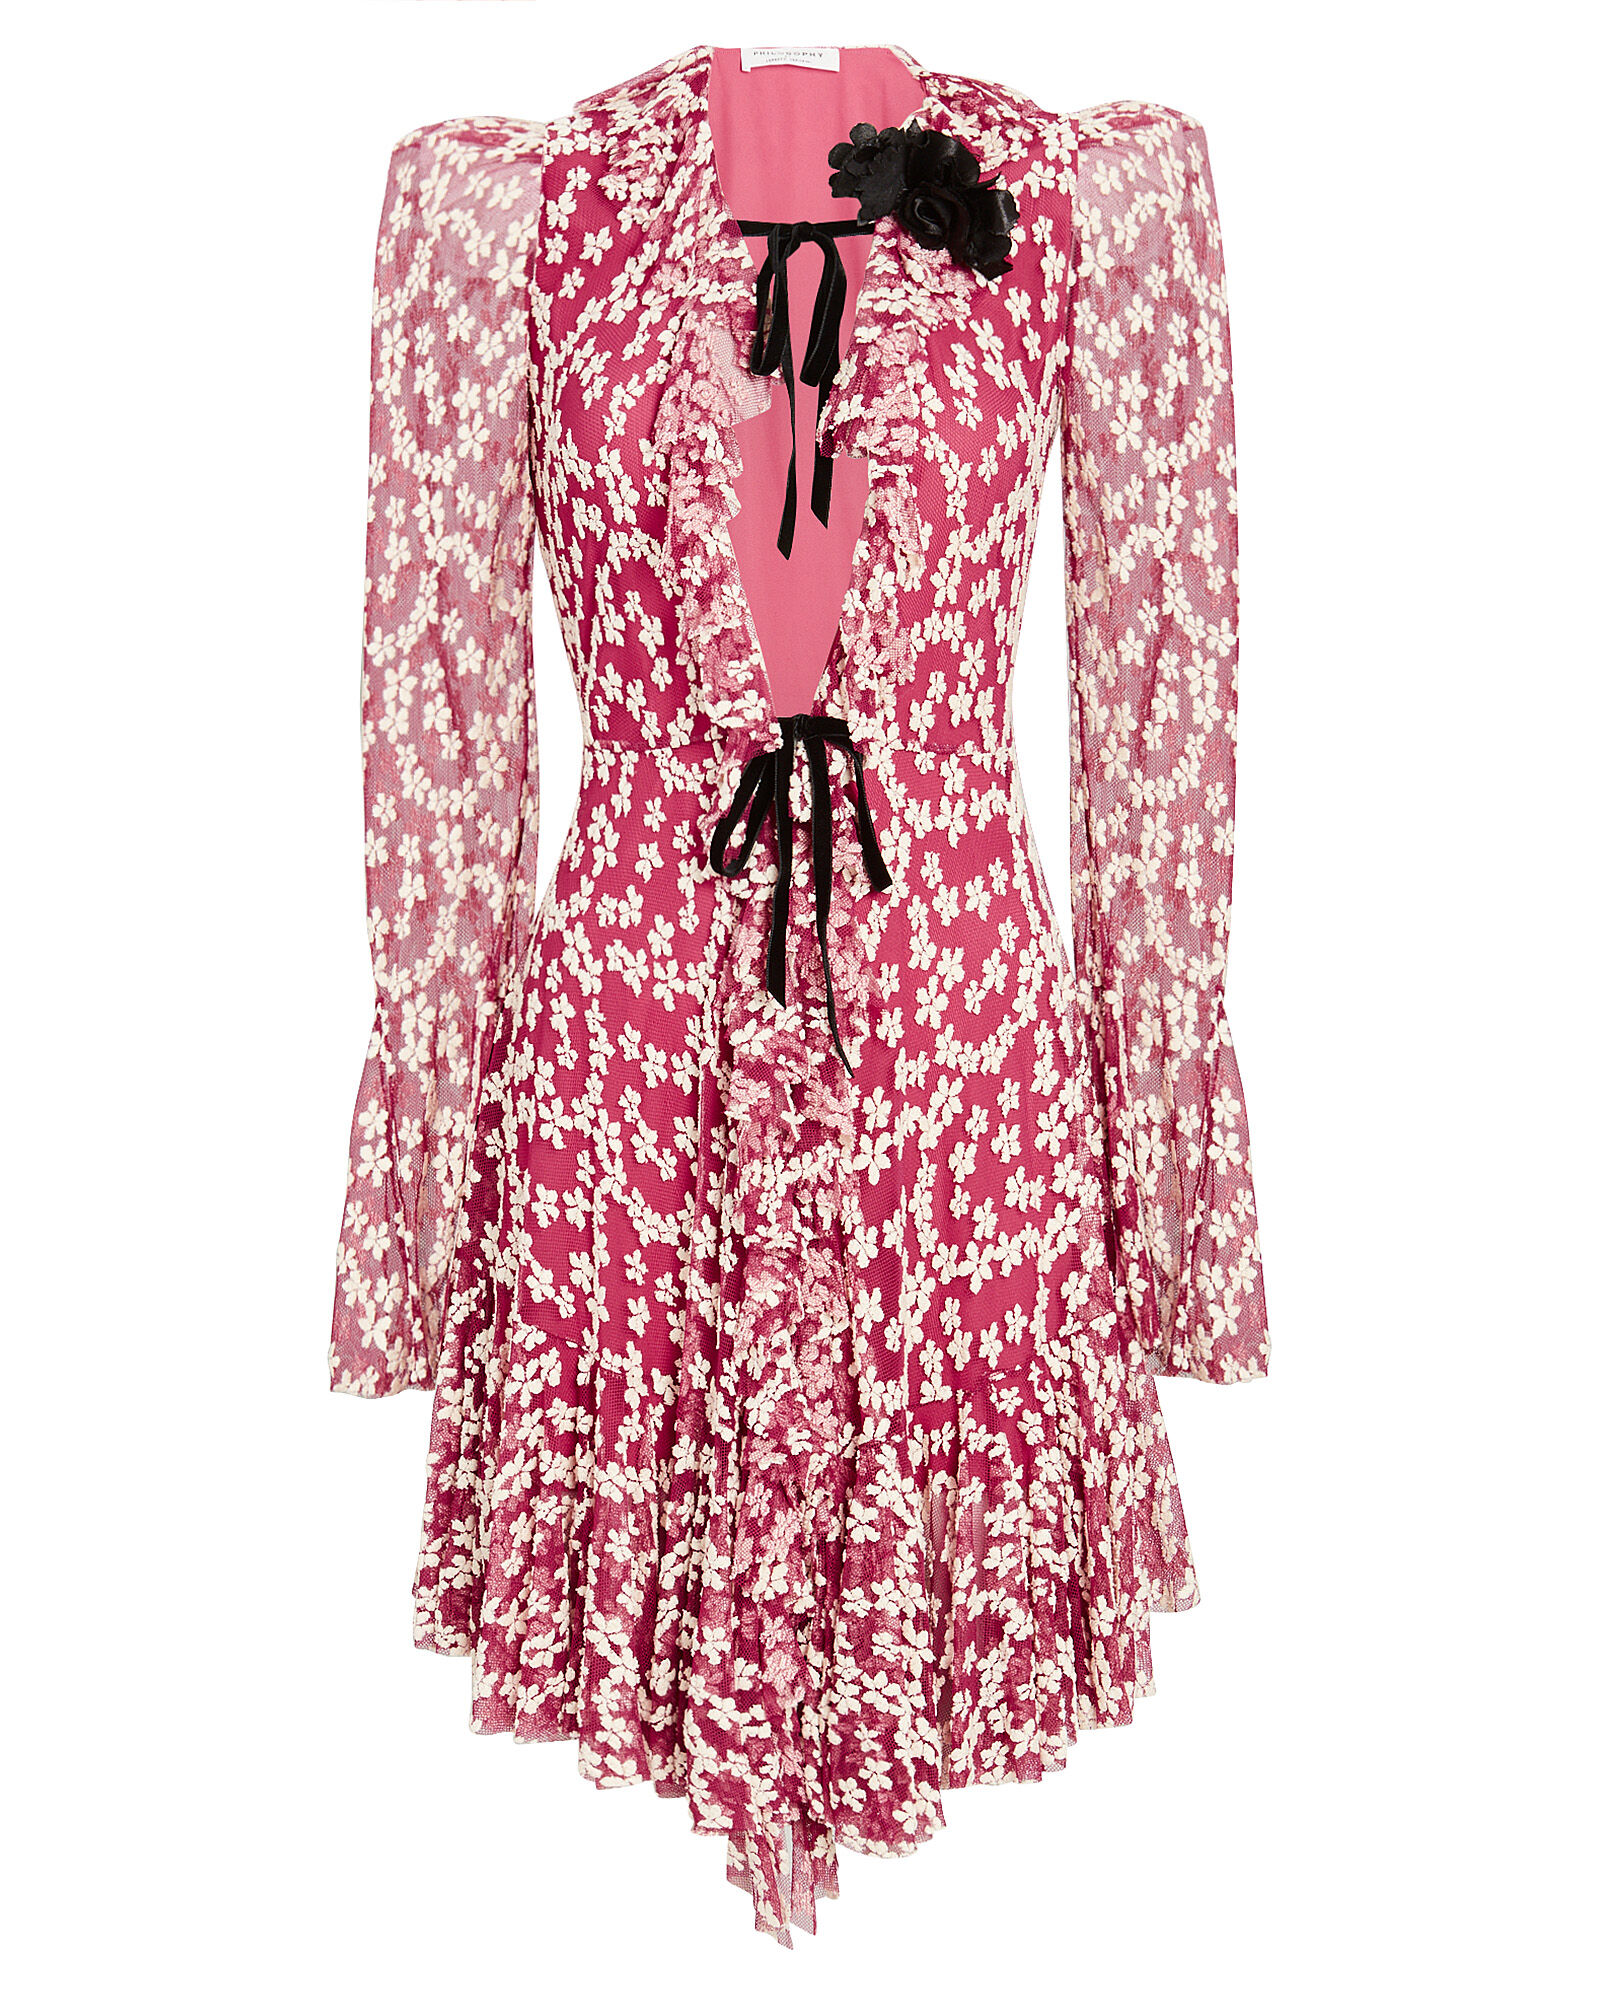 Ruffled Floral Tulle Dress, PINK, hi-res